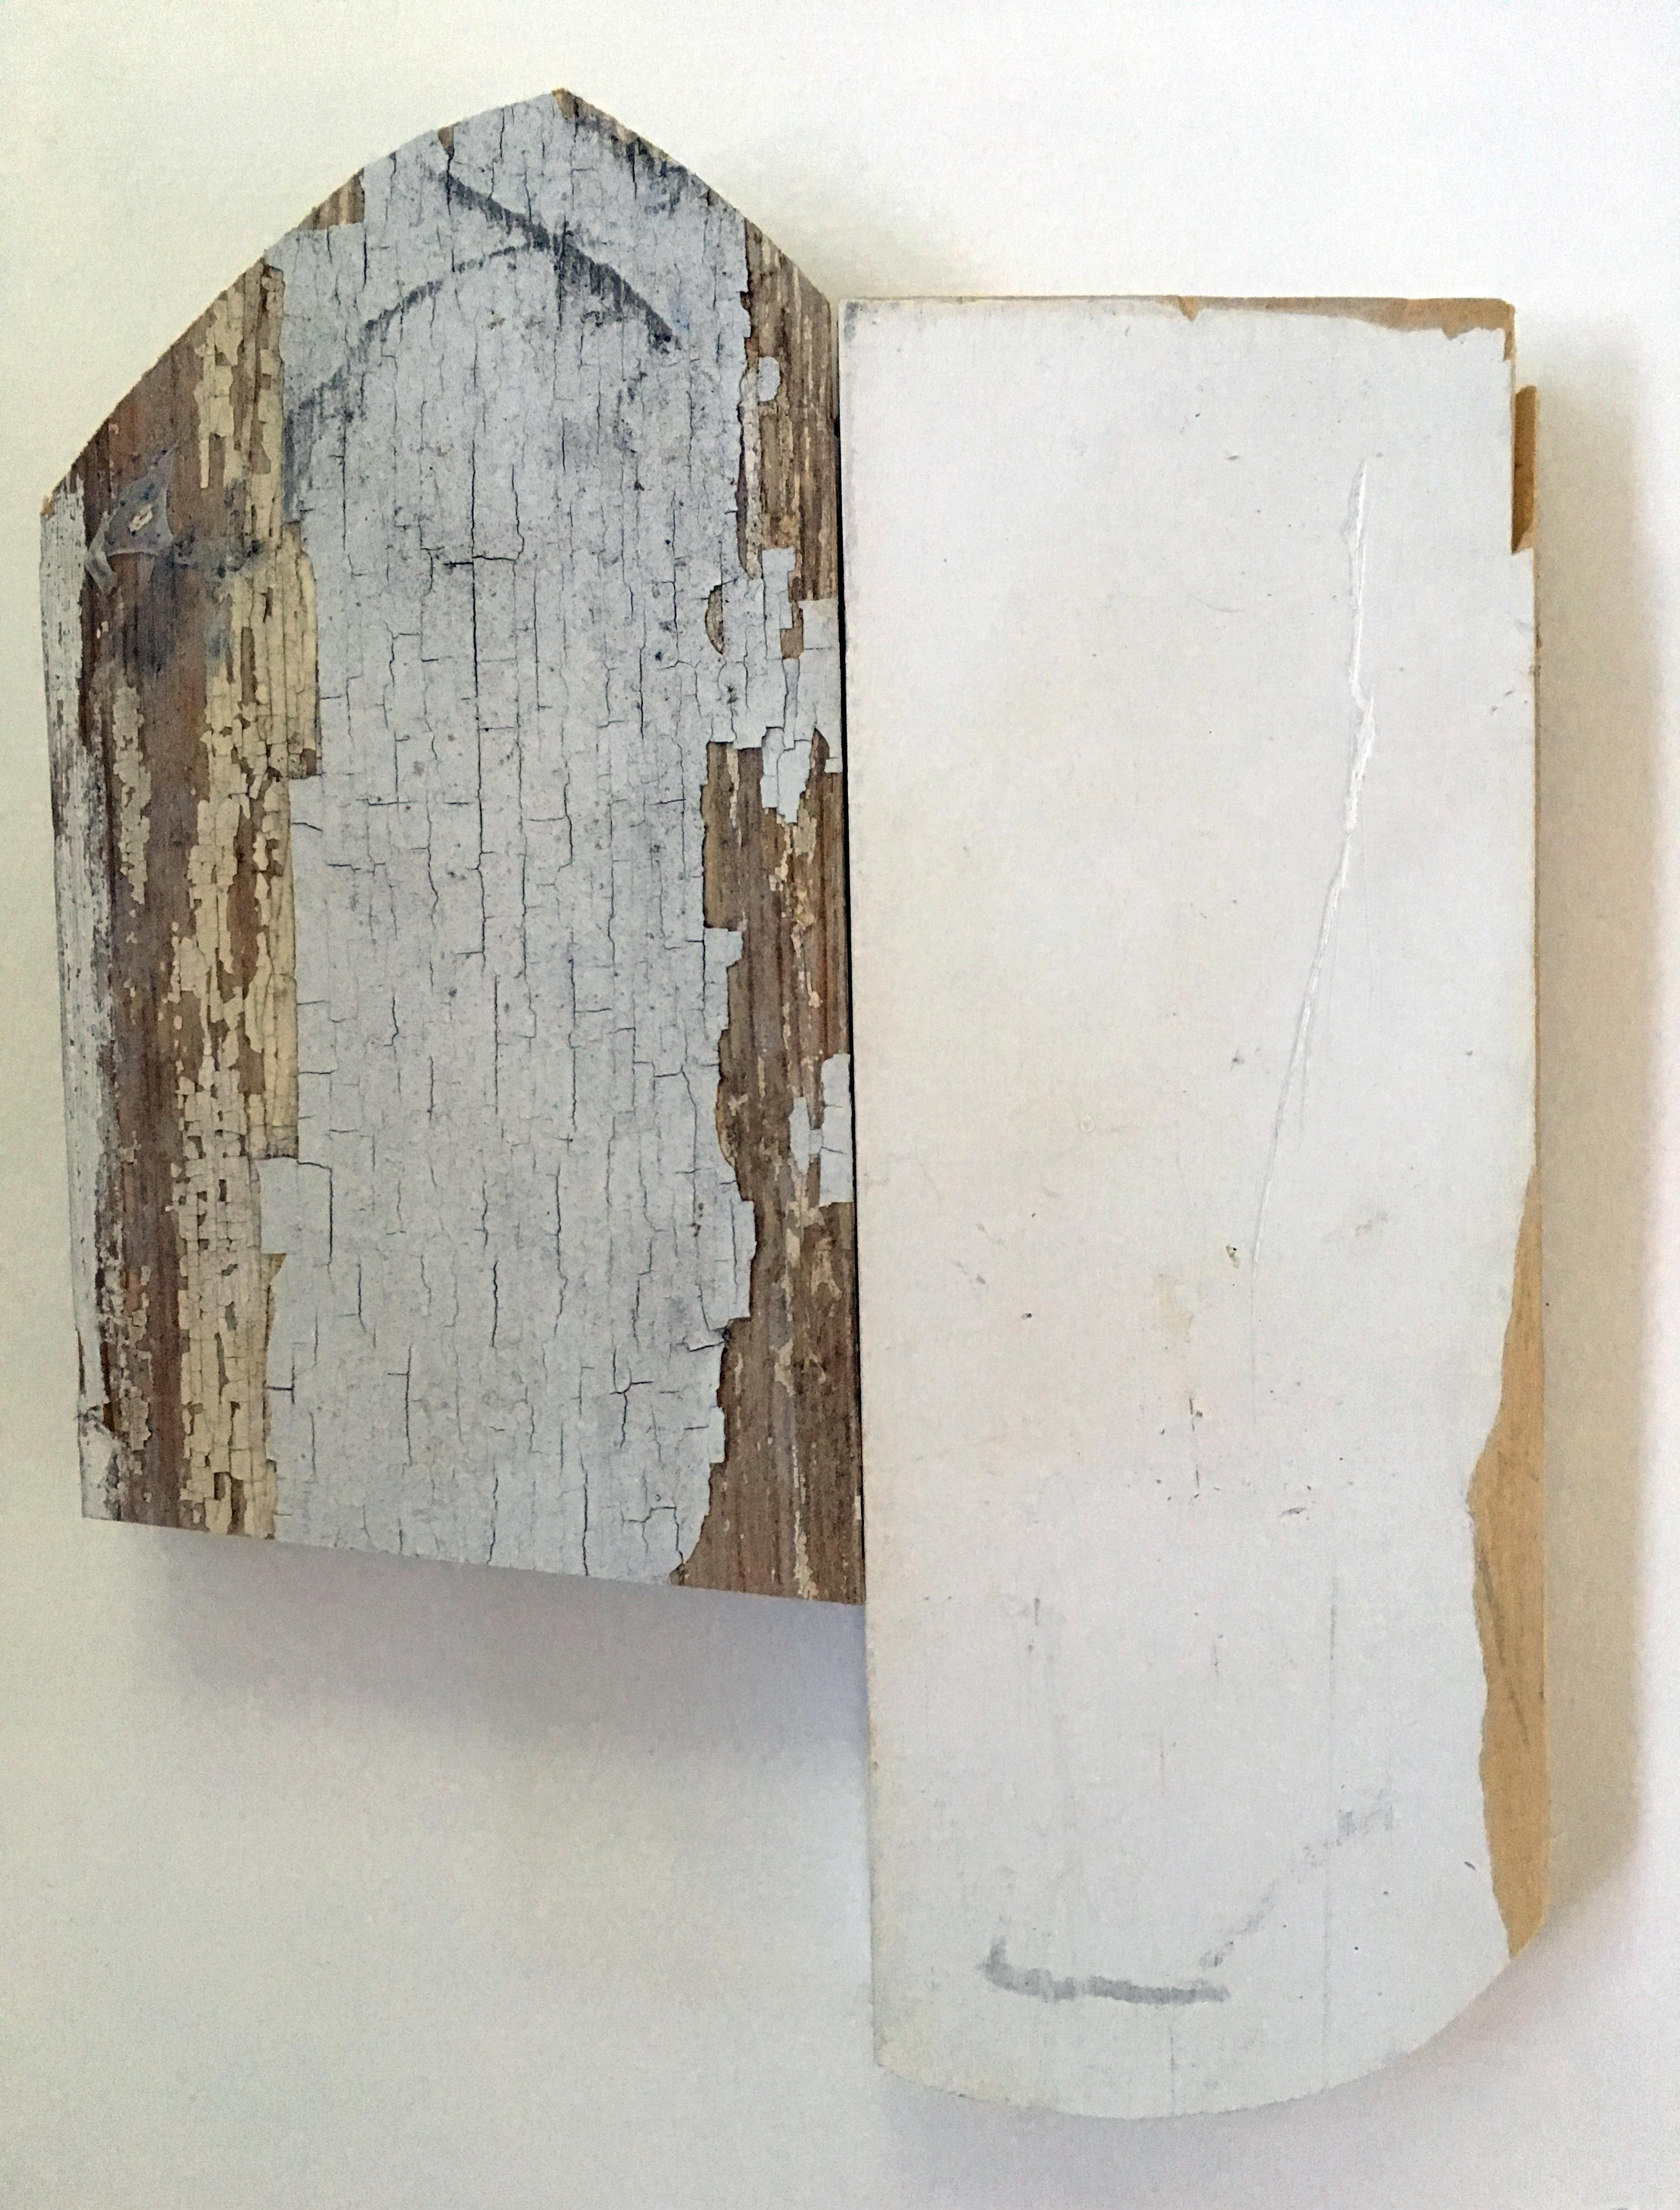 Diane Englander, Peeling White and Wood, 2018, scrap wood, 9 x 7 inches